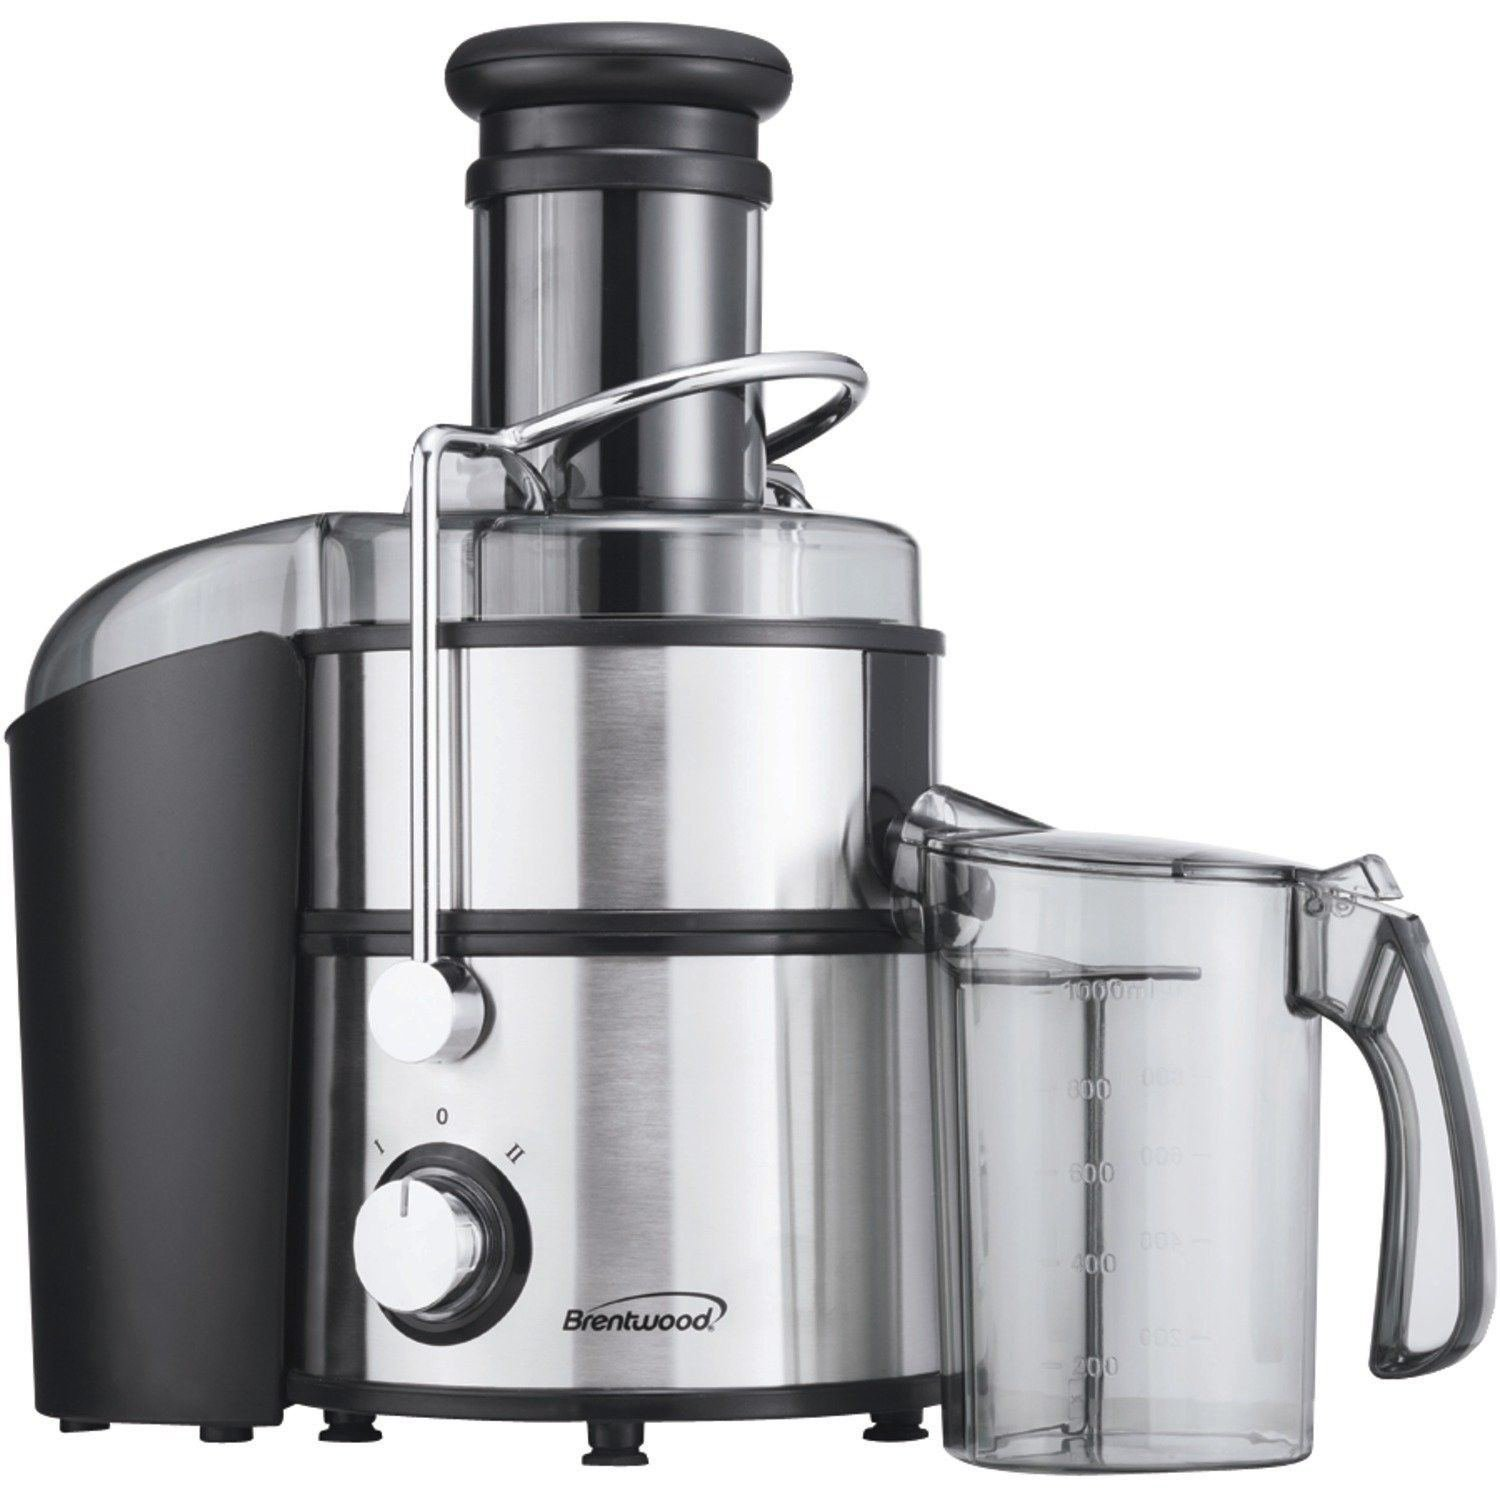 Brentwood Juicer Stainless Steel Power Juice Extractor by Electric California by Electric California